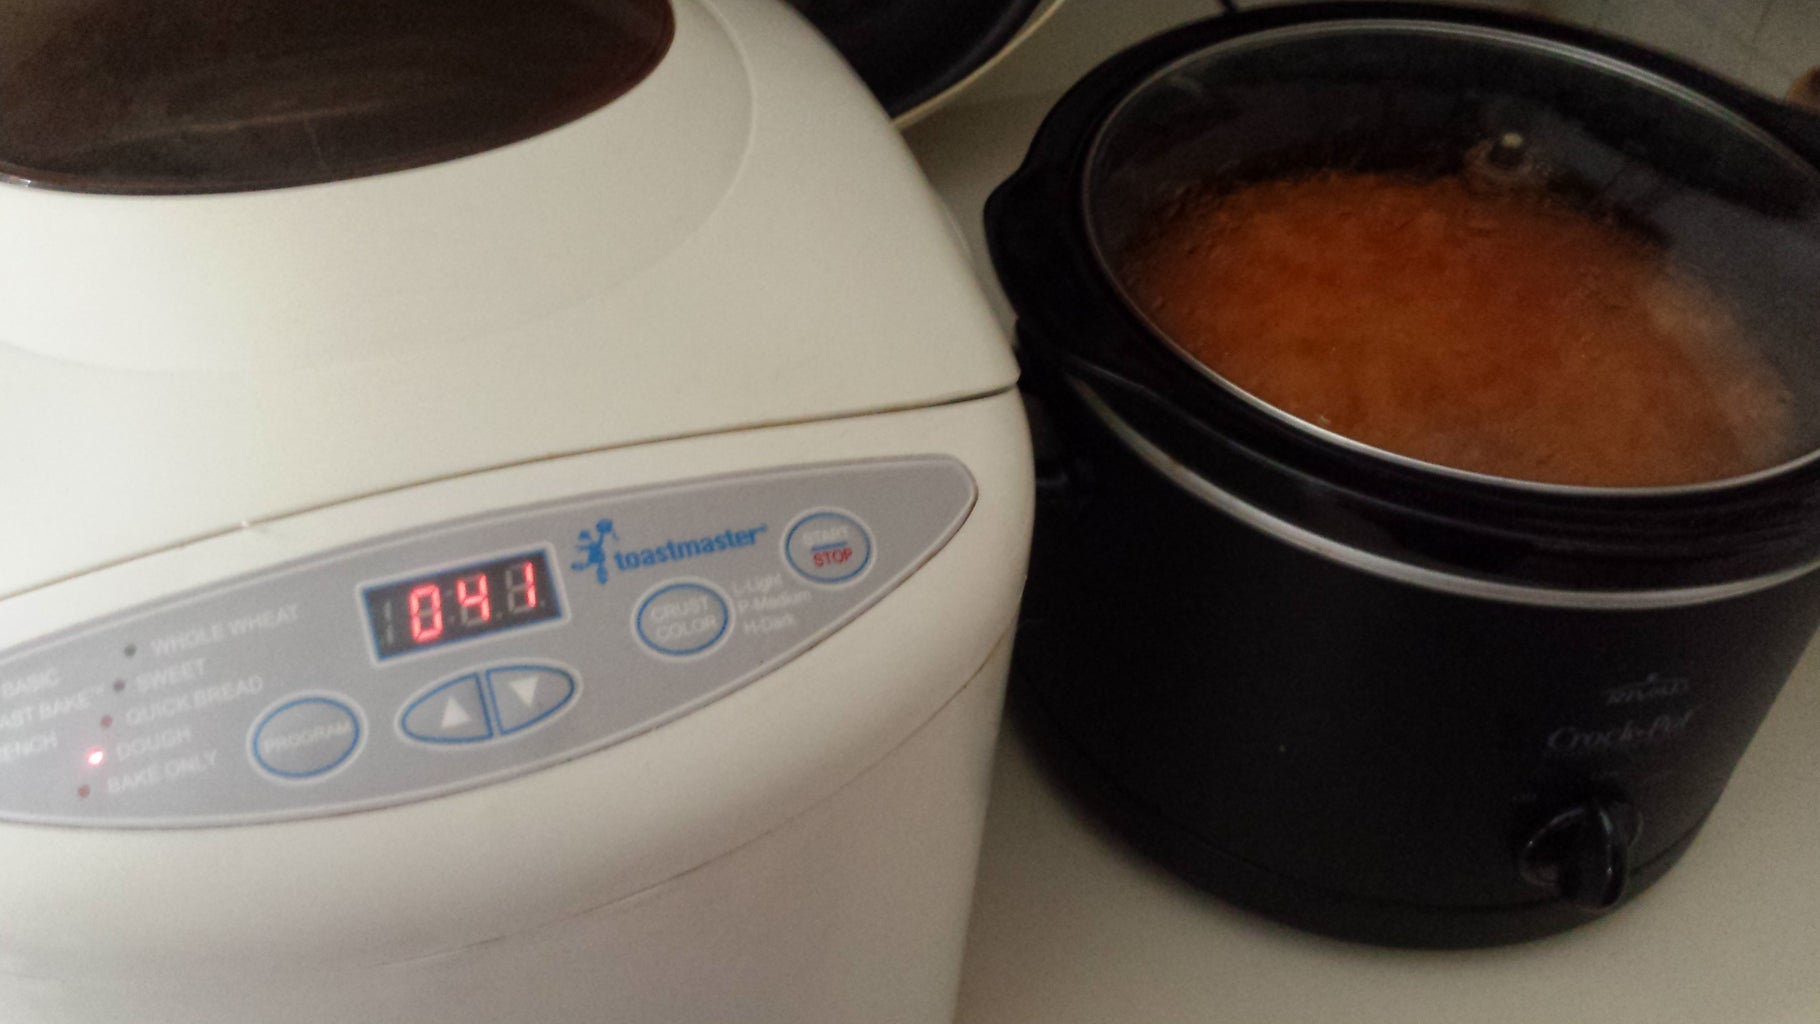 Prep Ingredients & Fire Up the Breadmaker!